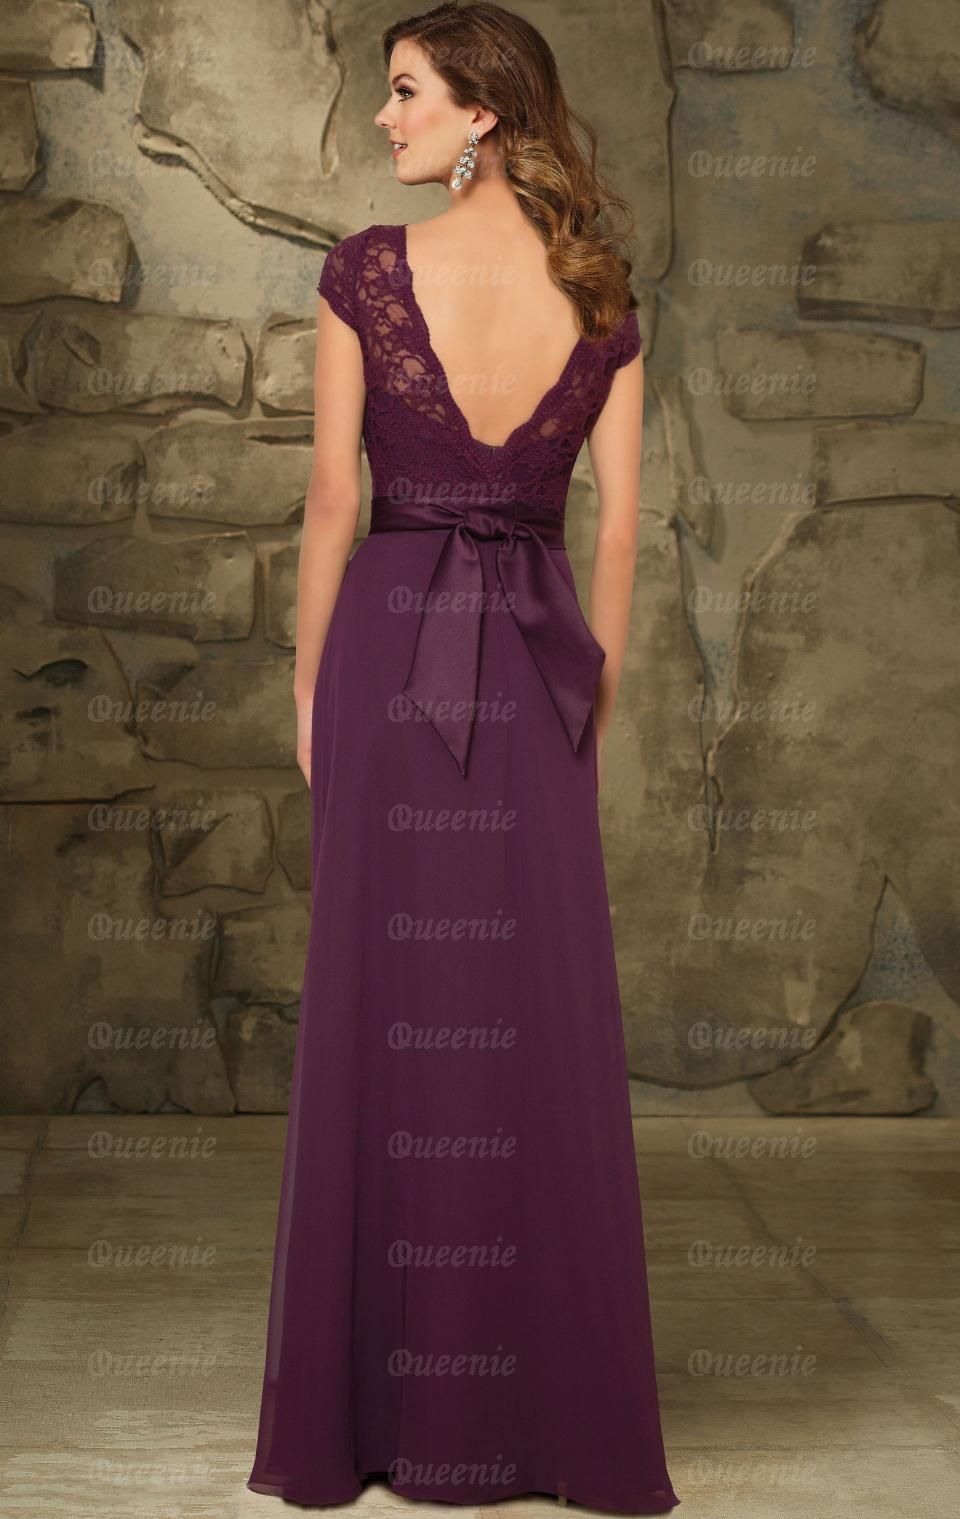 2015 Eggplant Bridesmaid Dress BNNCG0014-Bridesmaid UK | Chelsea\'s ...